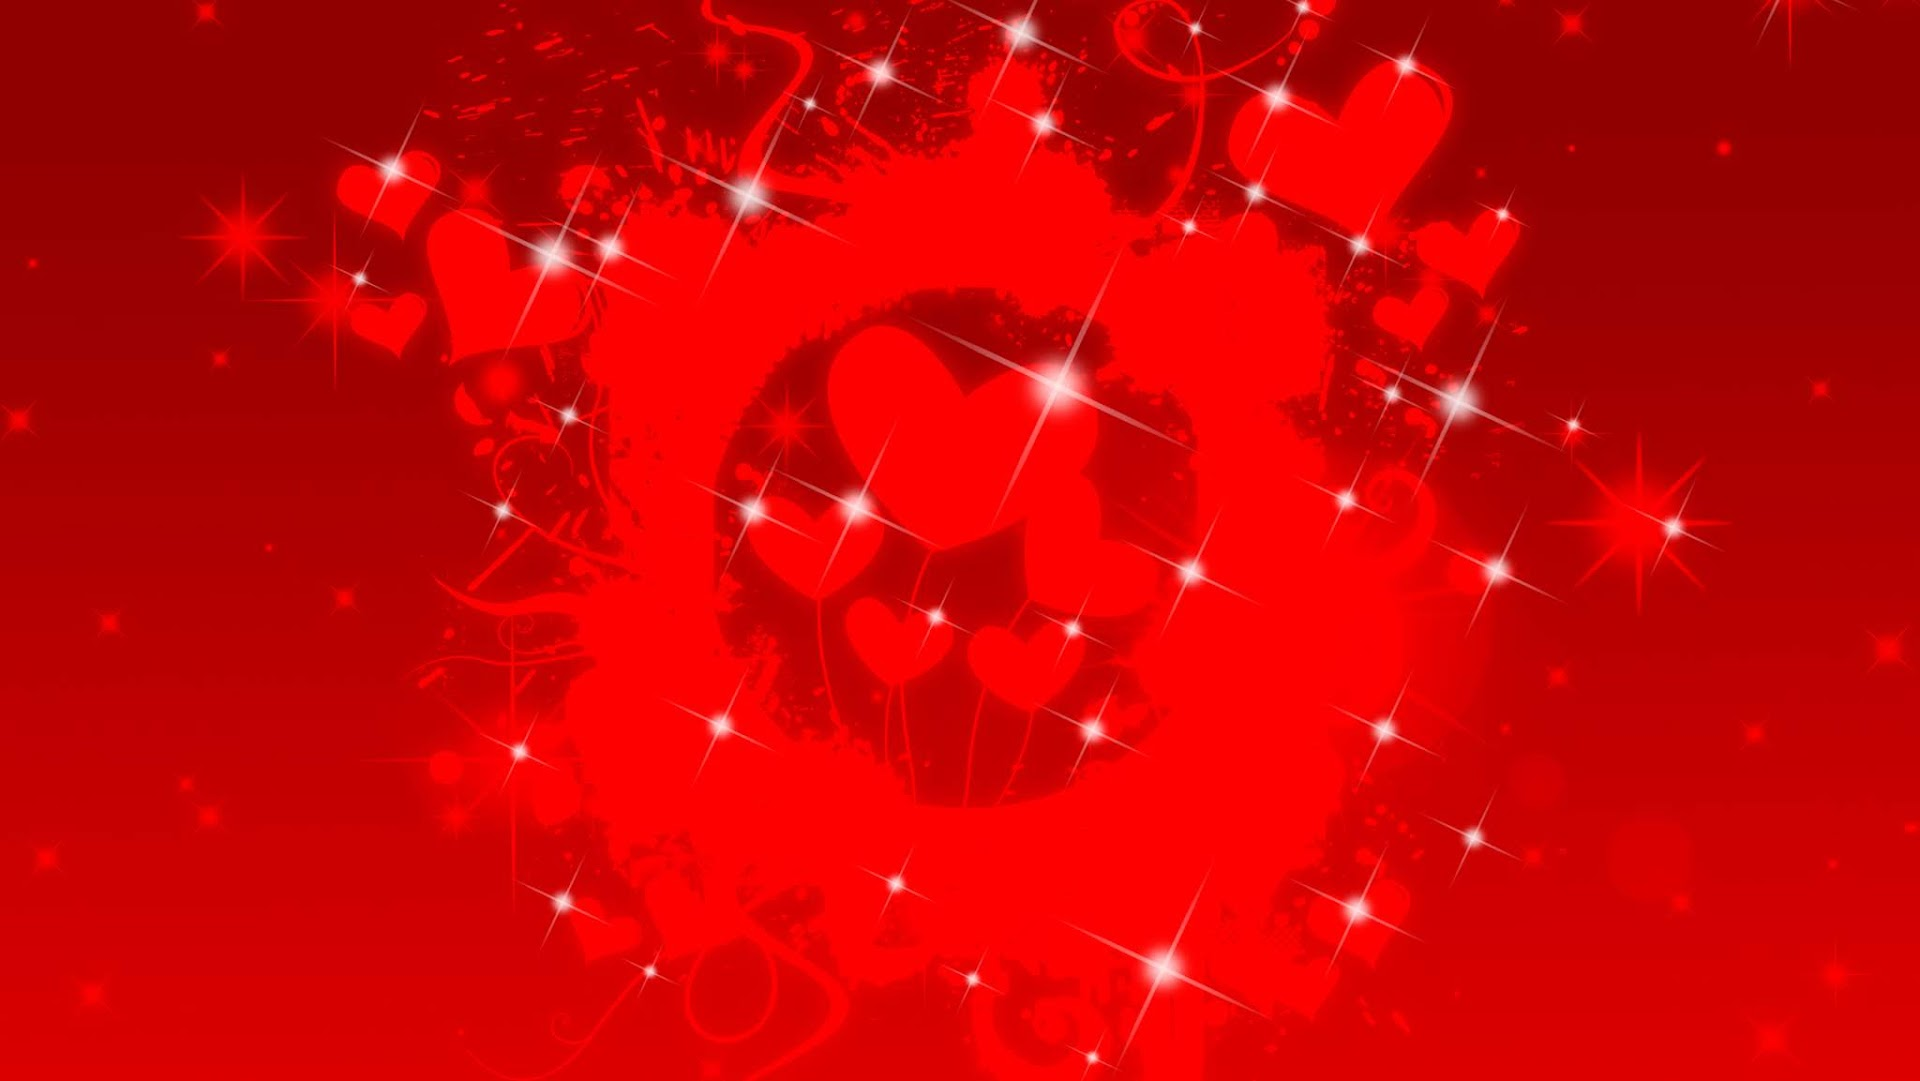 Shiny Red Hearts Presentation Background